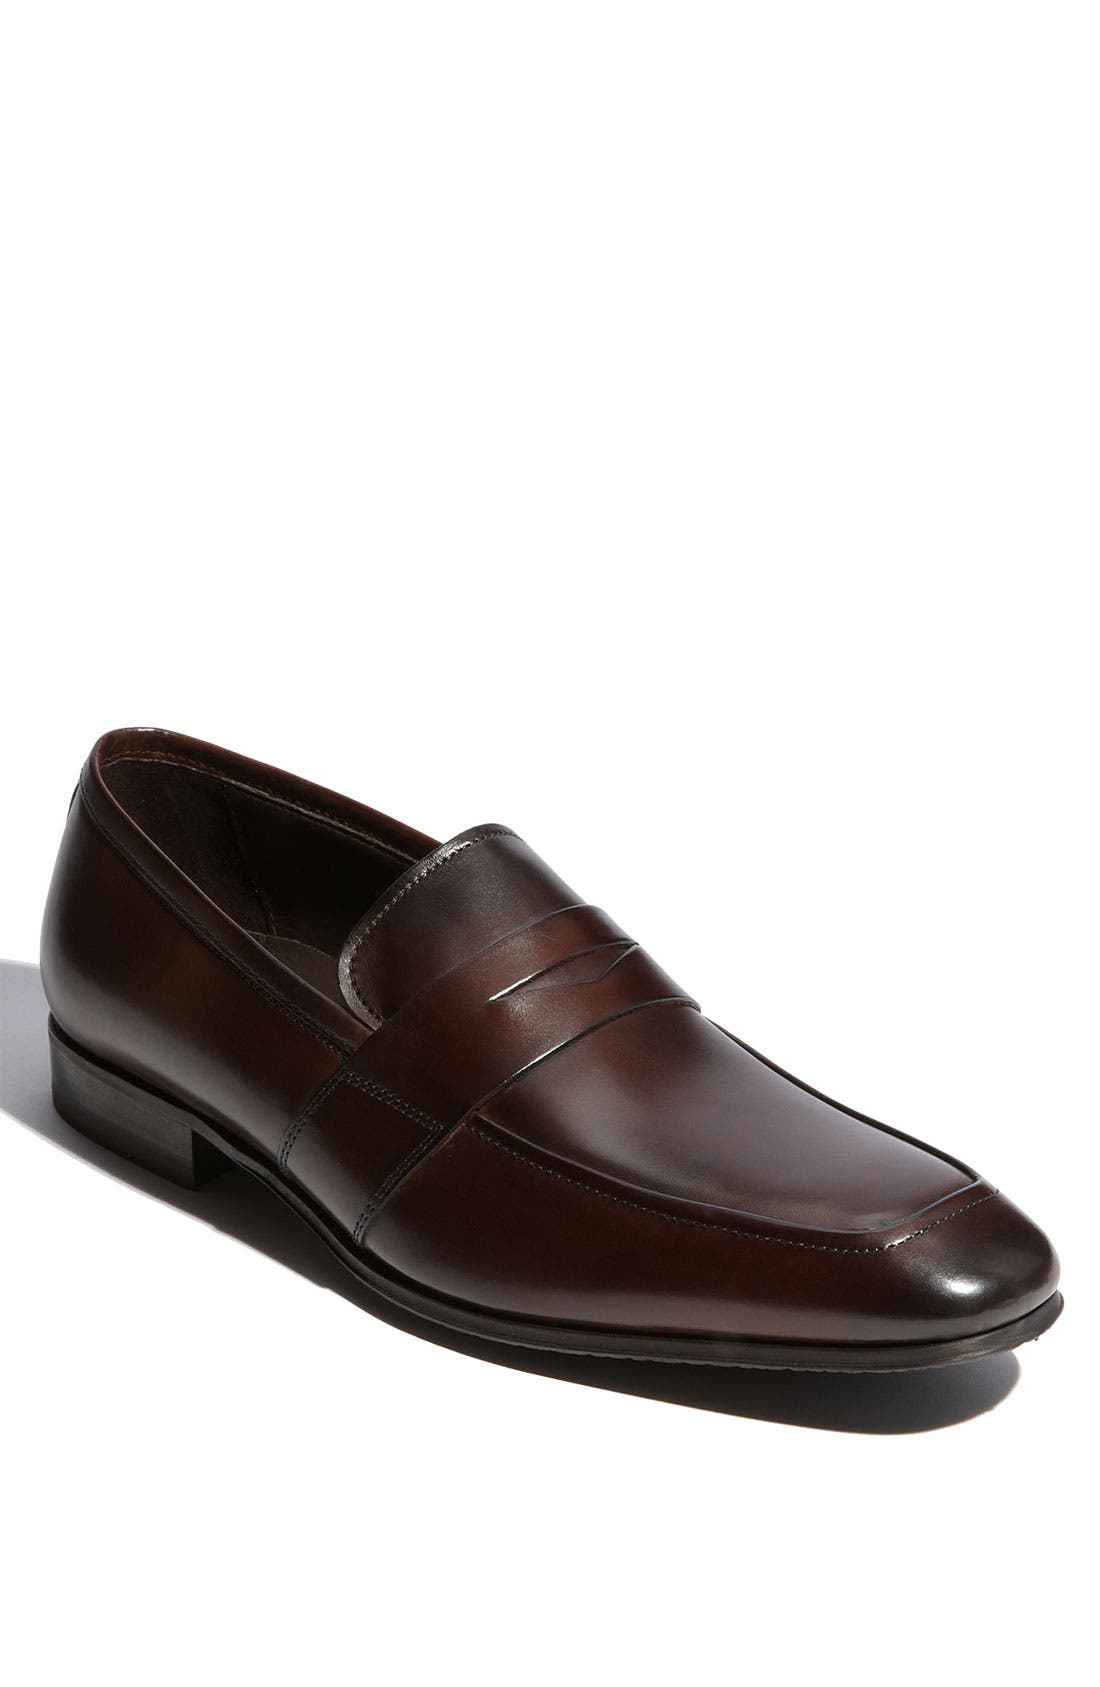 Alternate Image 1 Selected - To Boot New York 'Senato' Penny Loafer (Men)